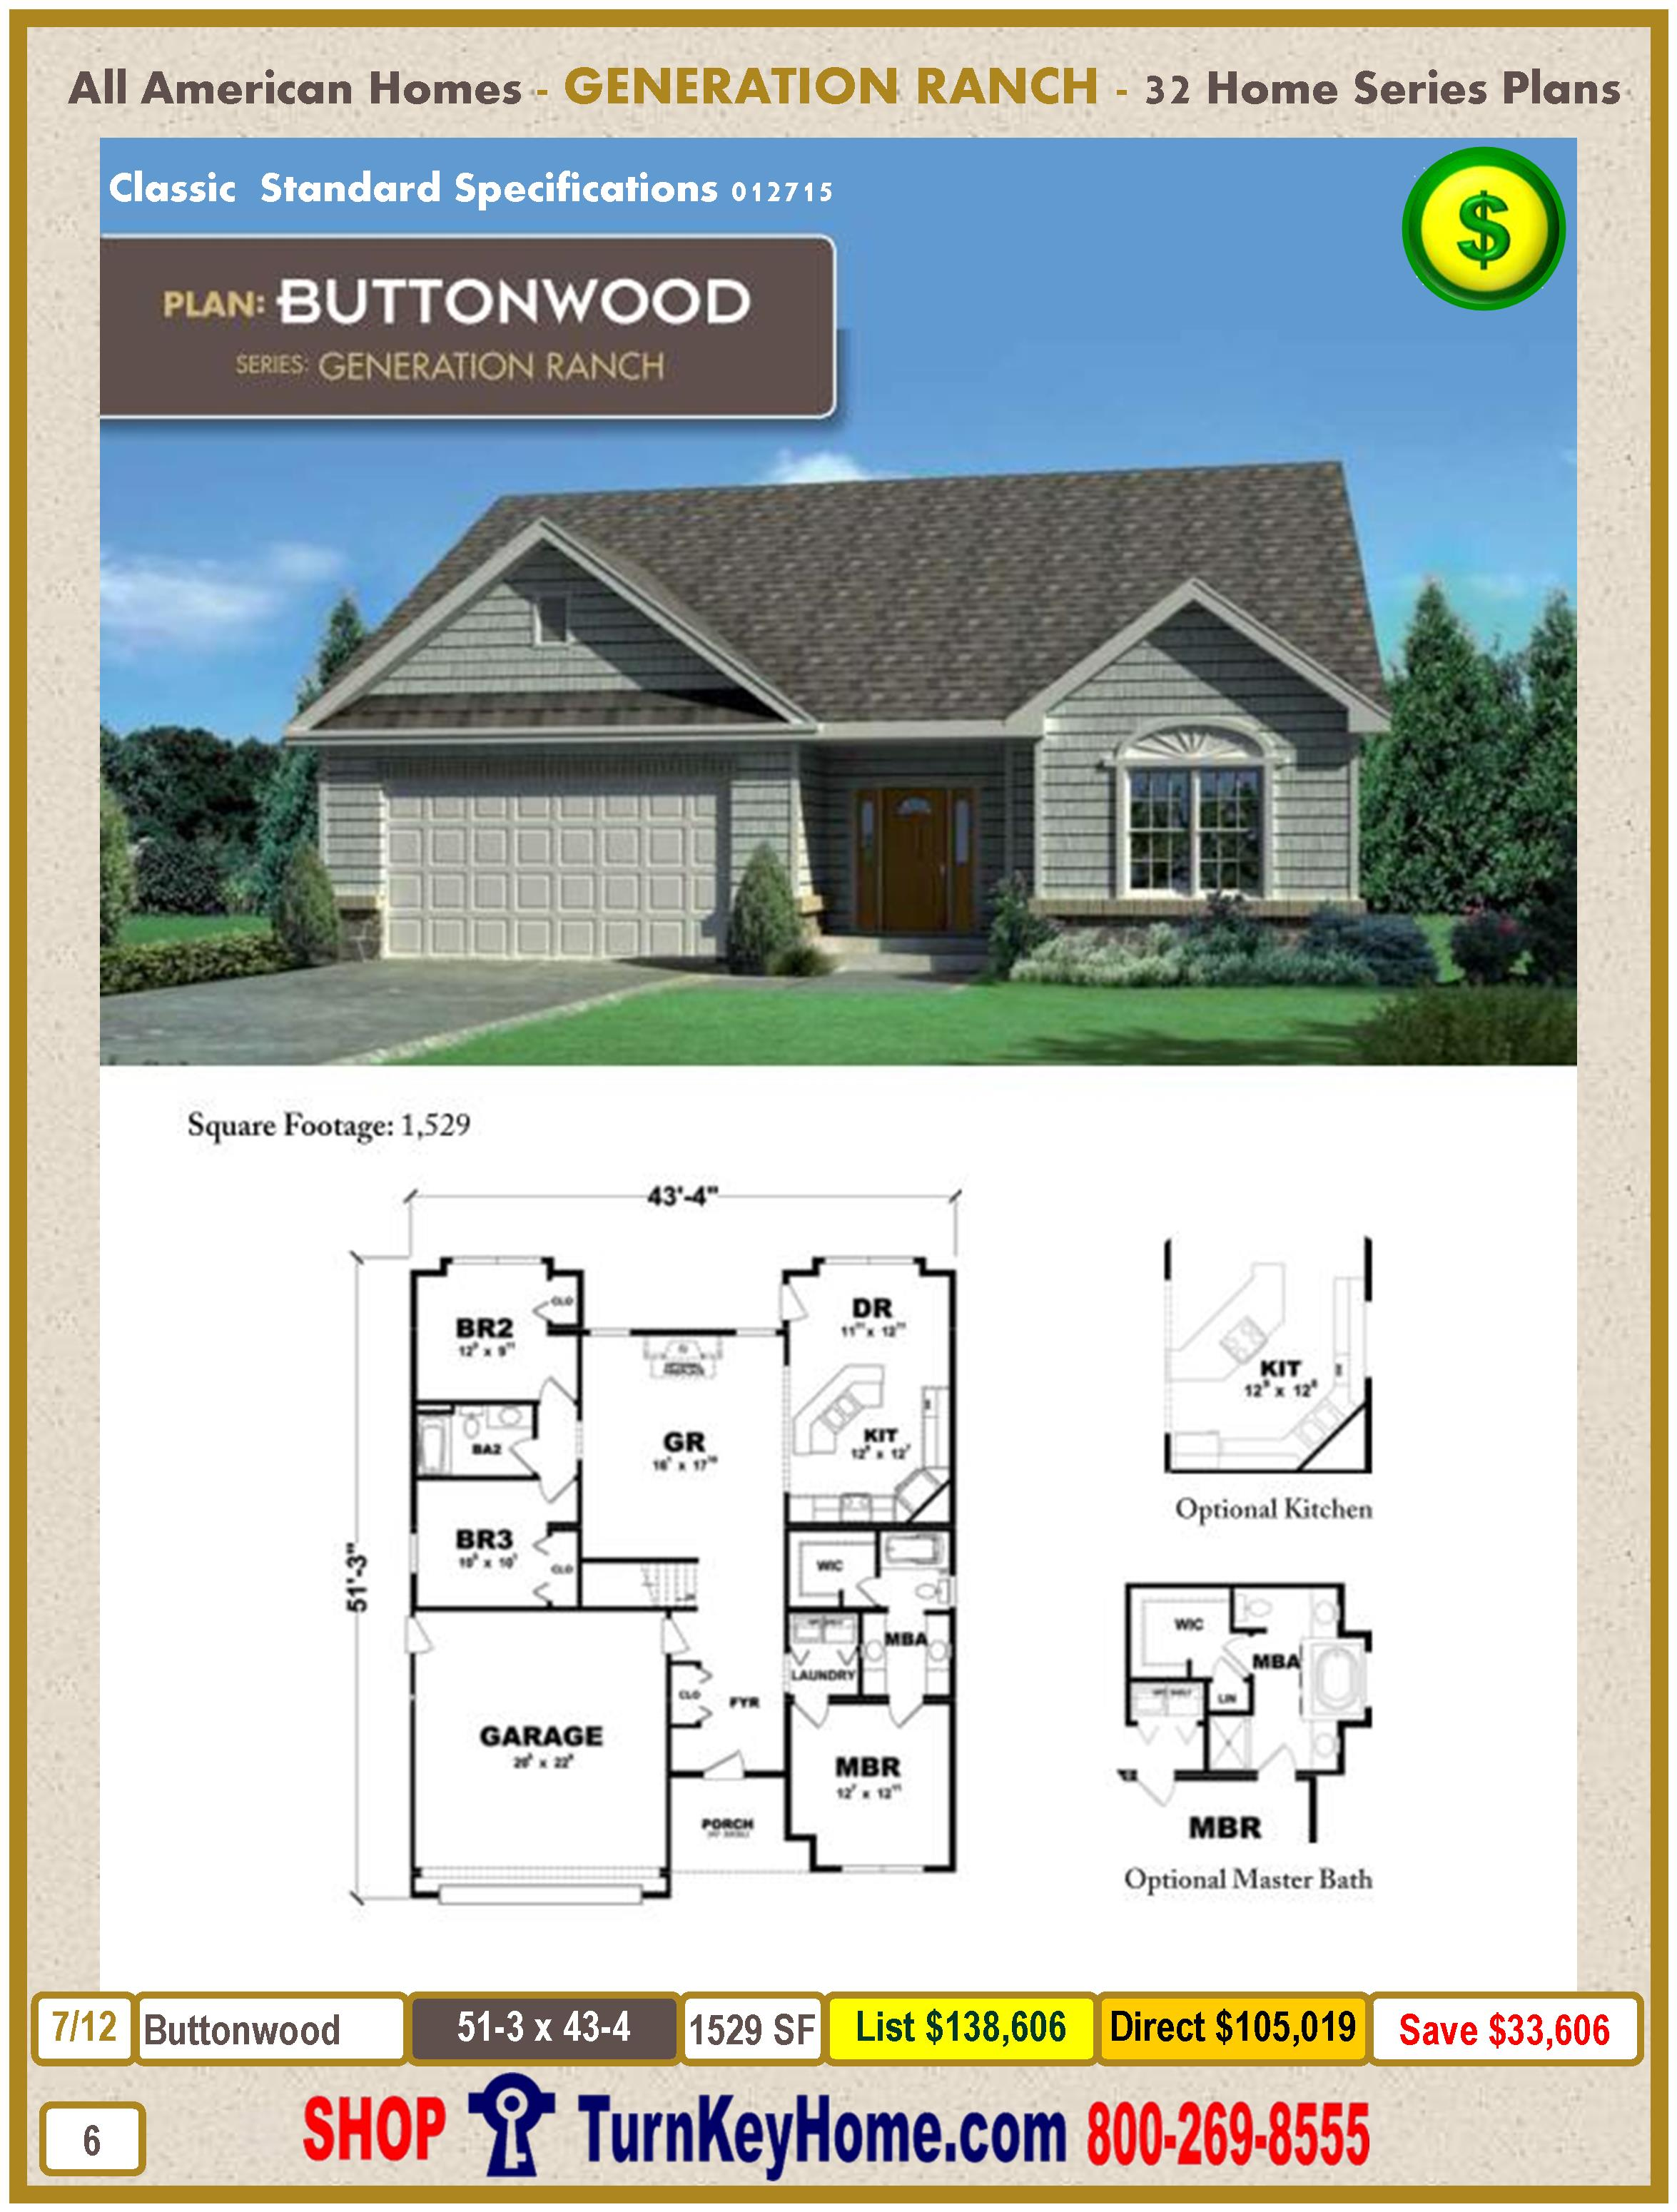 Modular.All.American.Homes.Generation.Ranch.Home.Series.Catalog.Page.6.Buttonwood.Direct.Price.021415